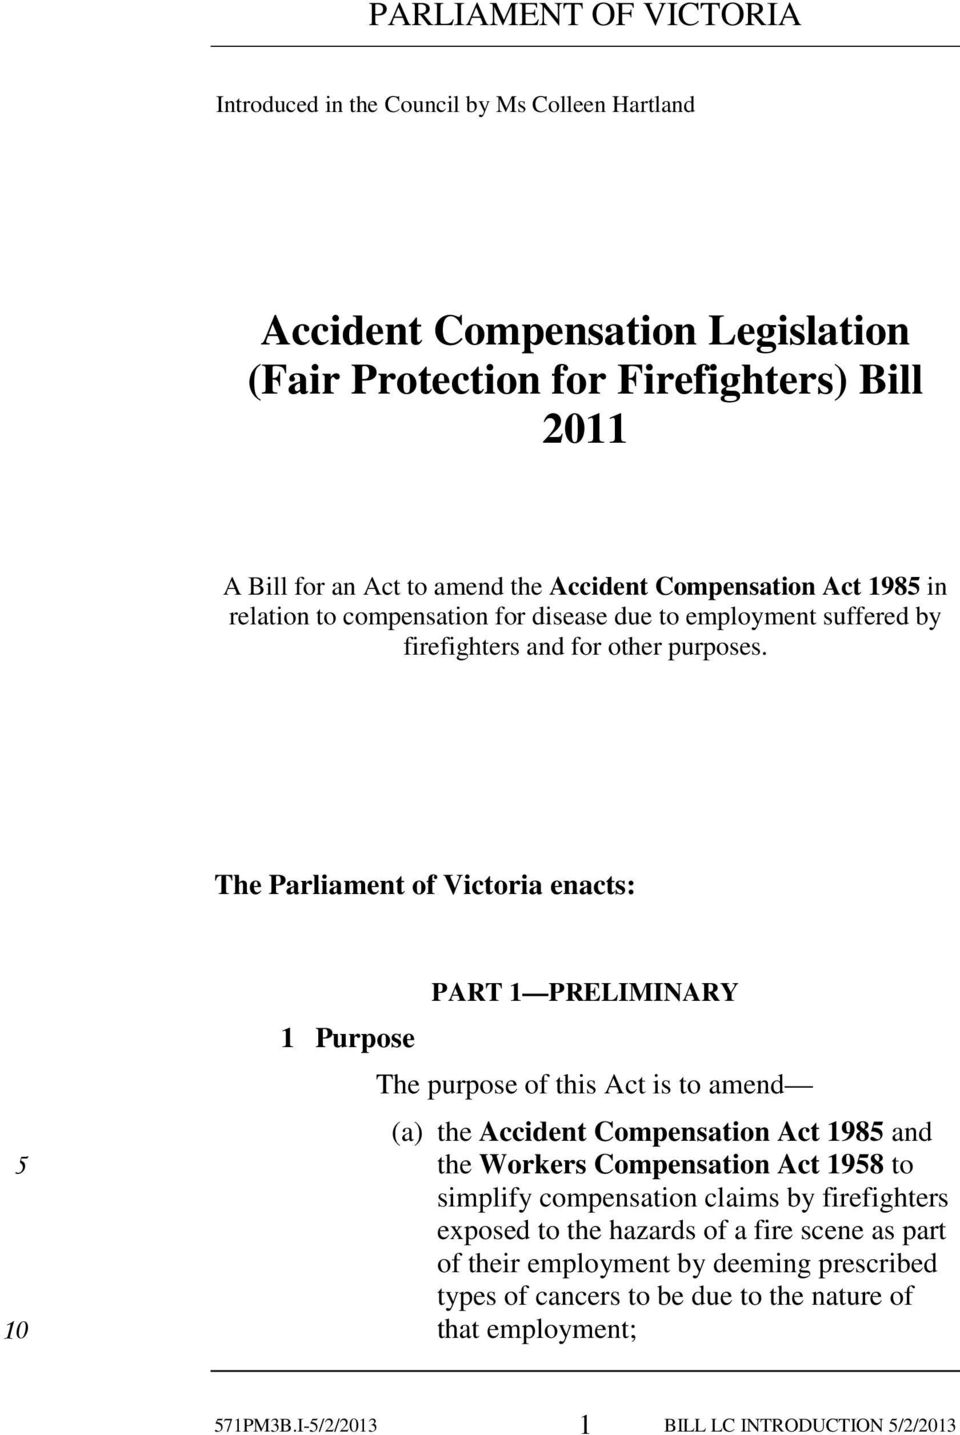 The Parliament of Victoria enacts: 1 Purpose PART 1 PRELIMINARY The purpose of this Act is to amend (a) the Accident Compensation Act 198 and the Workers Compensation Act 198 to